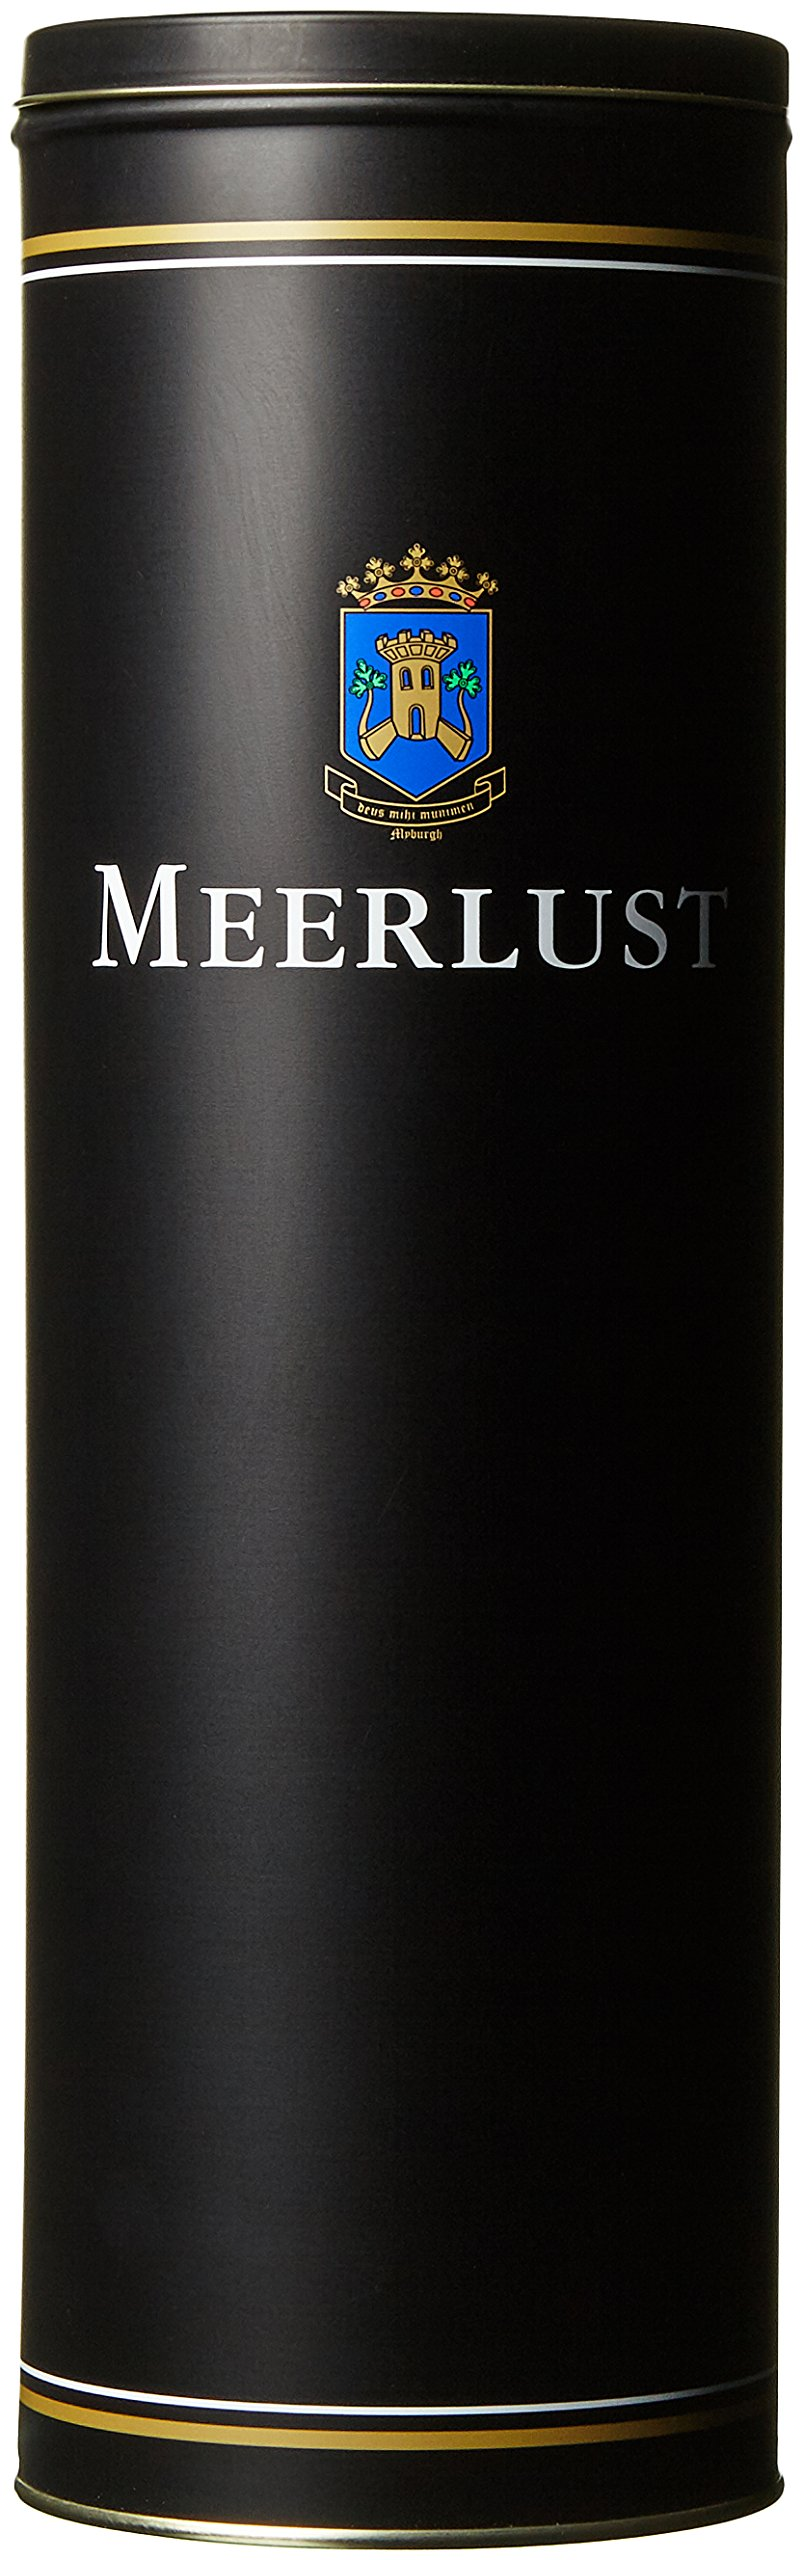 Meerlust-Wine-Estate-Cuvee-2012-trocken-1-x-15-l